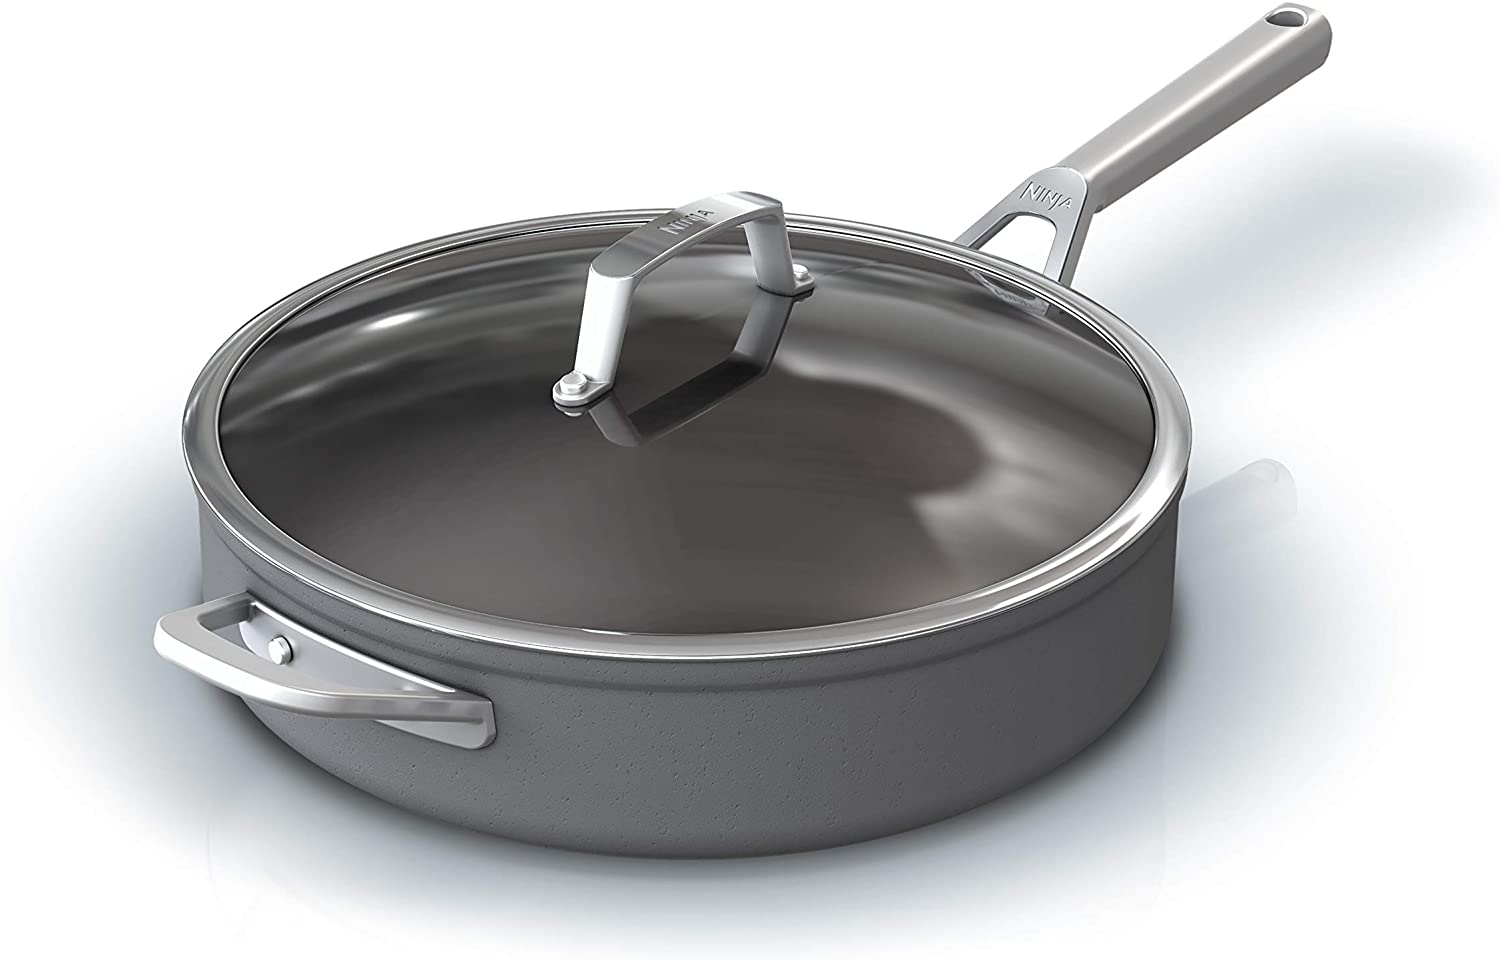 Best Saute Pan: Top 8 Picks in 2021 and Buying Guide 2 #cookymom